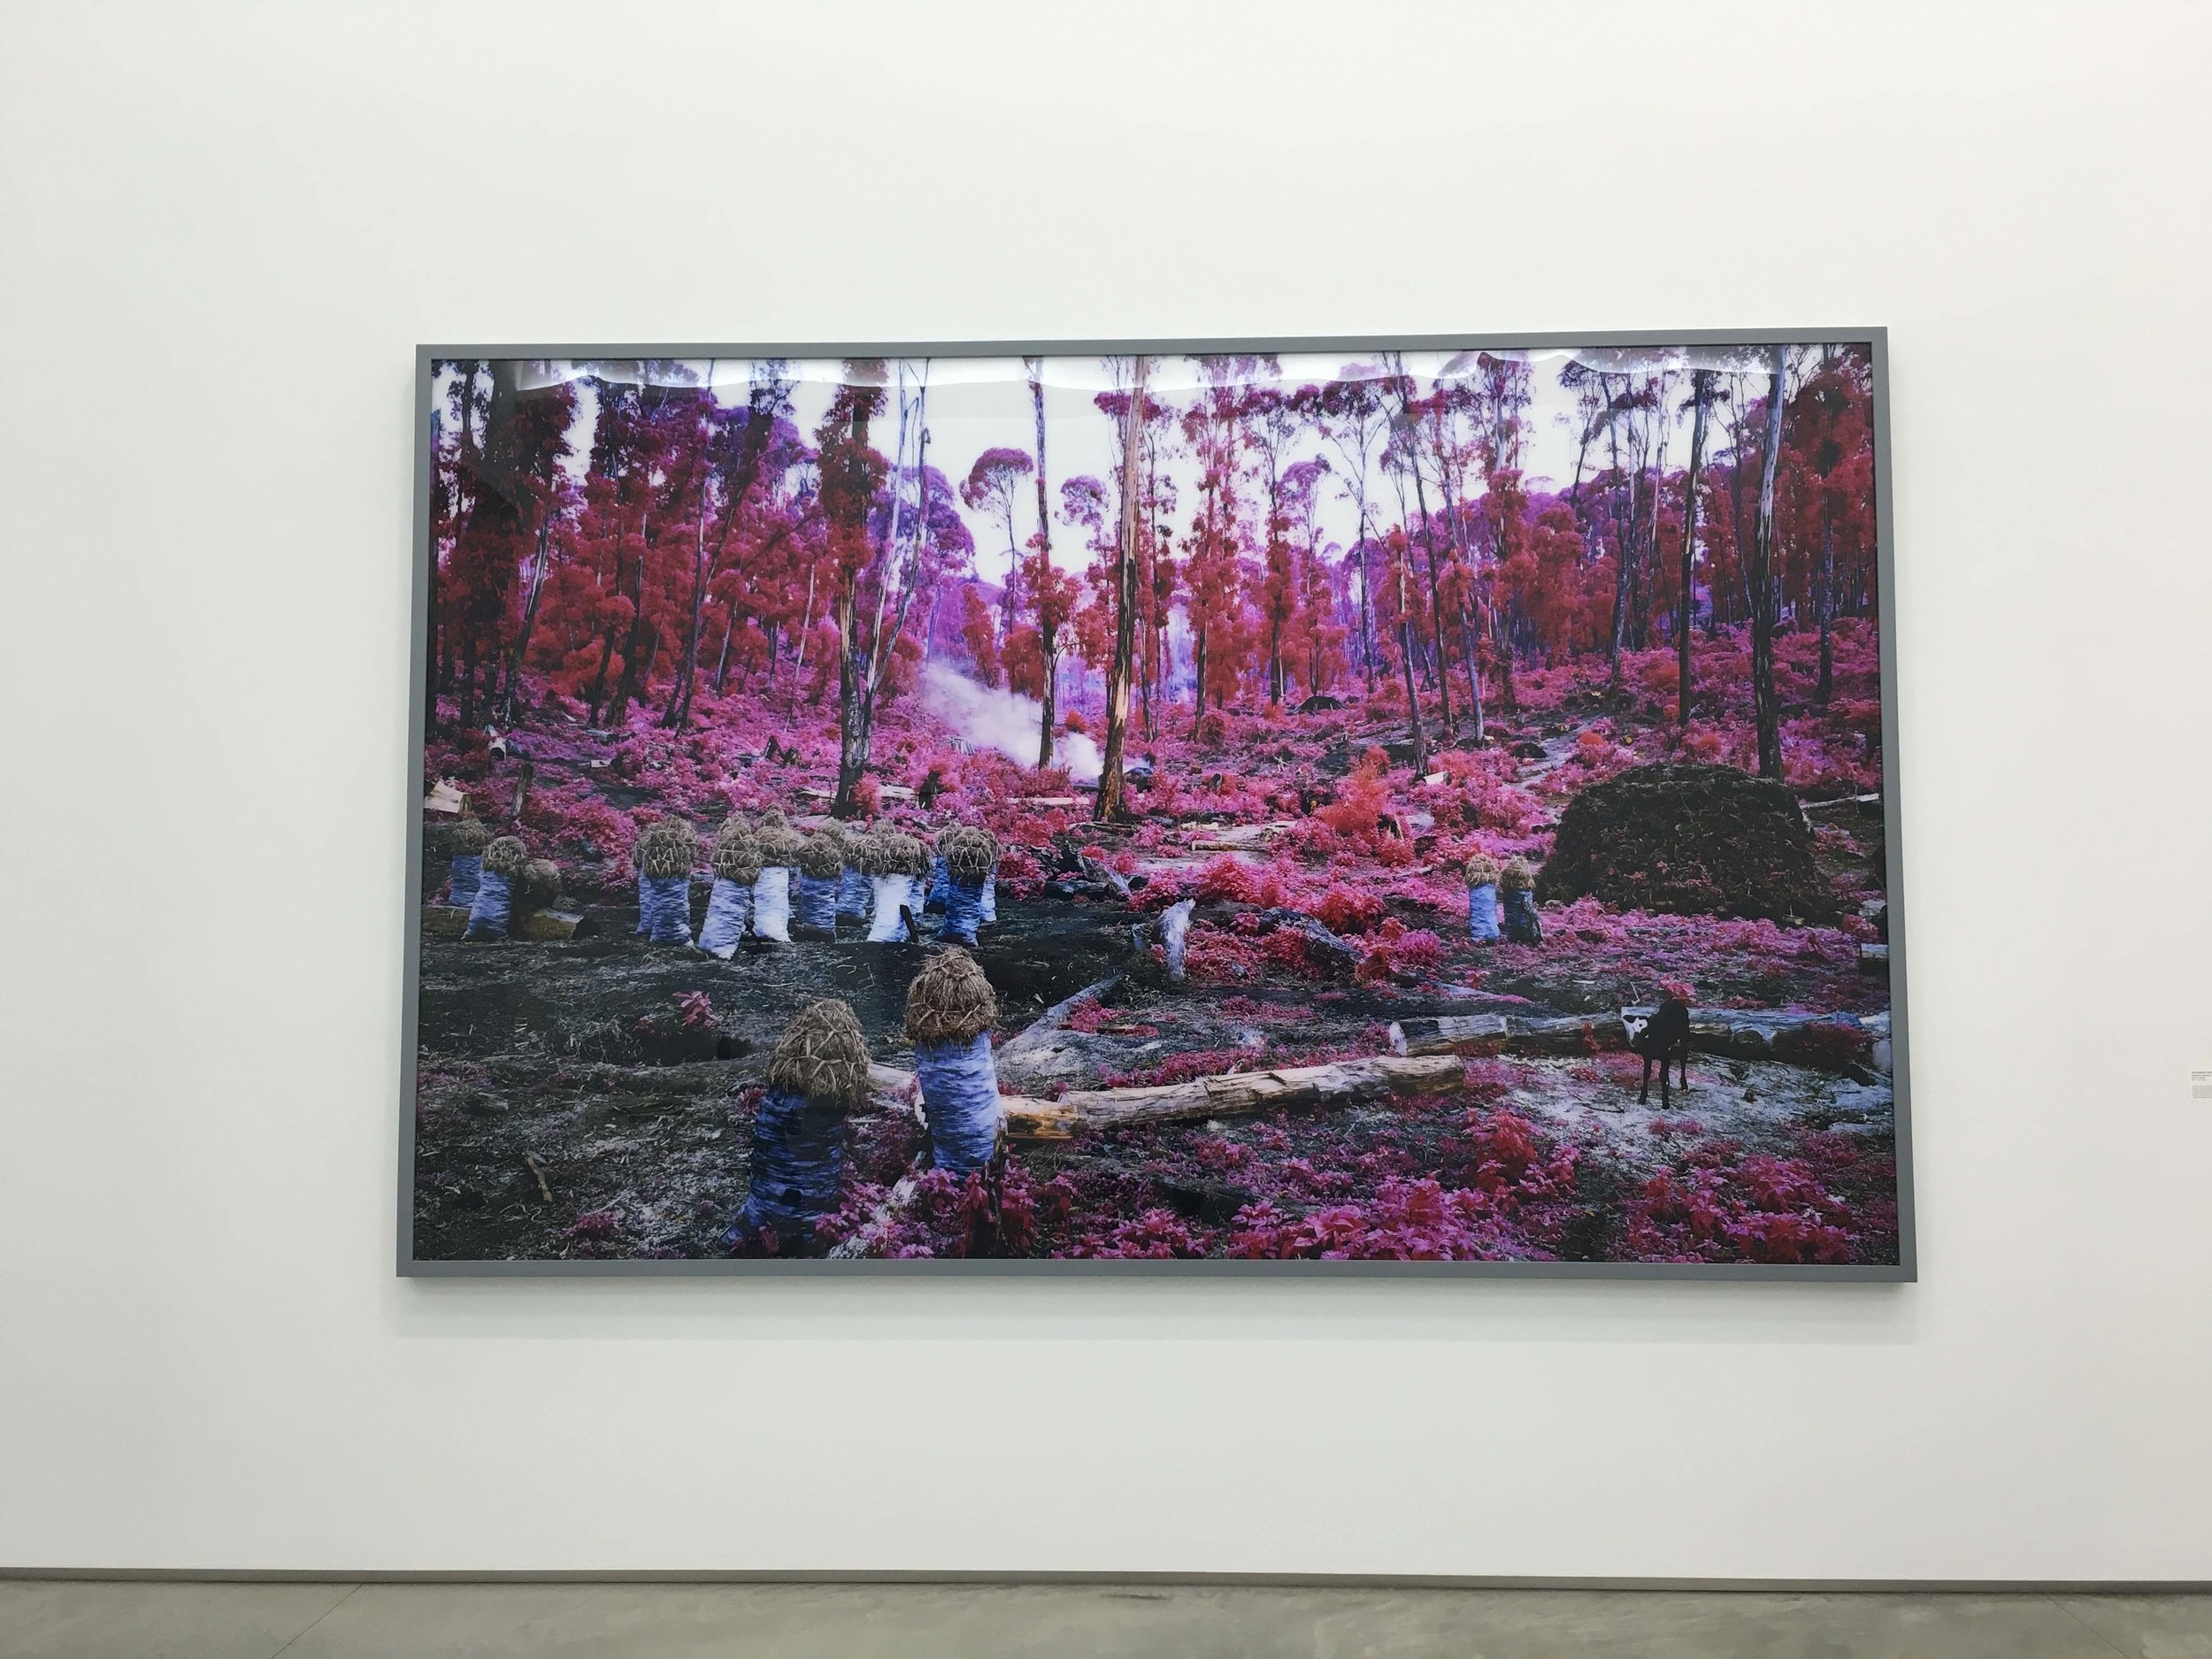 Richard Mosse,  Hunches in Bunches , 2011, Digital C-Print, 88x140 inches